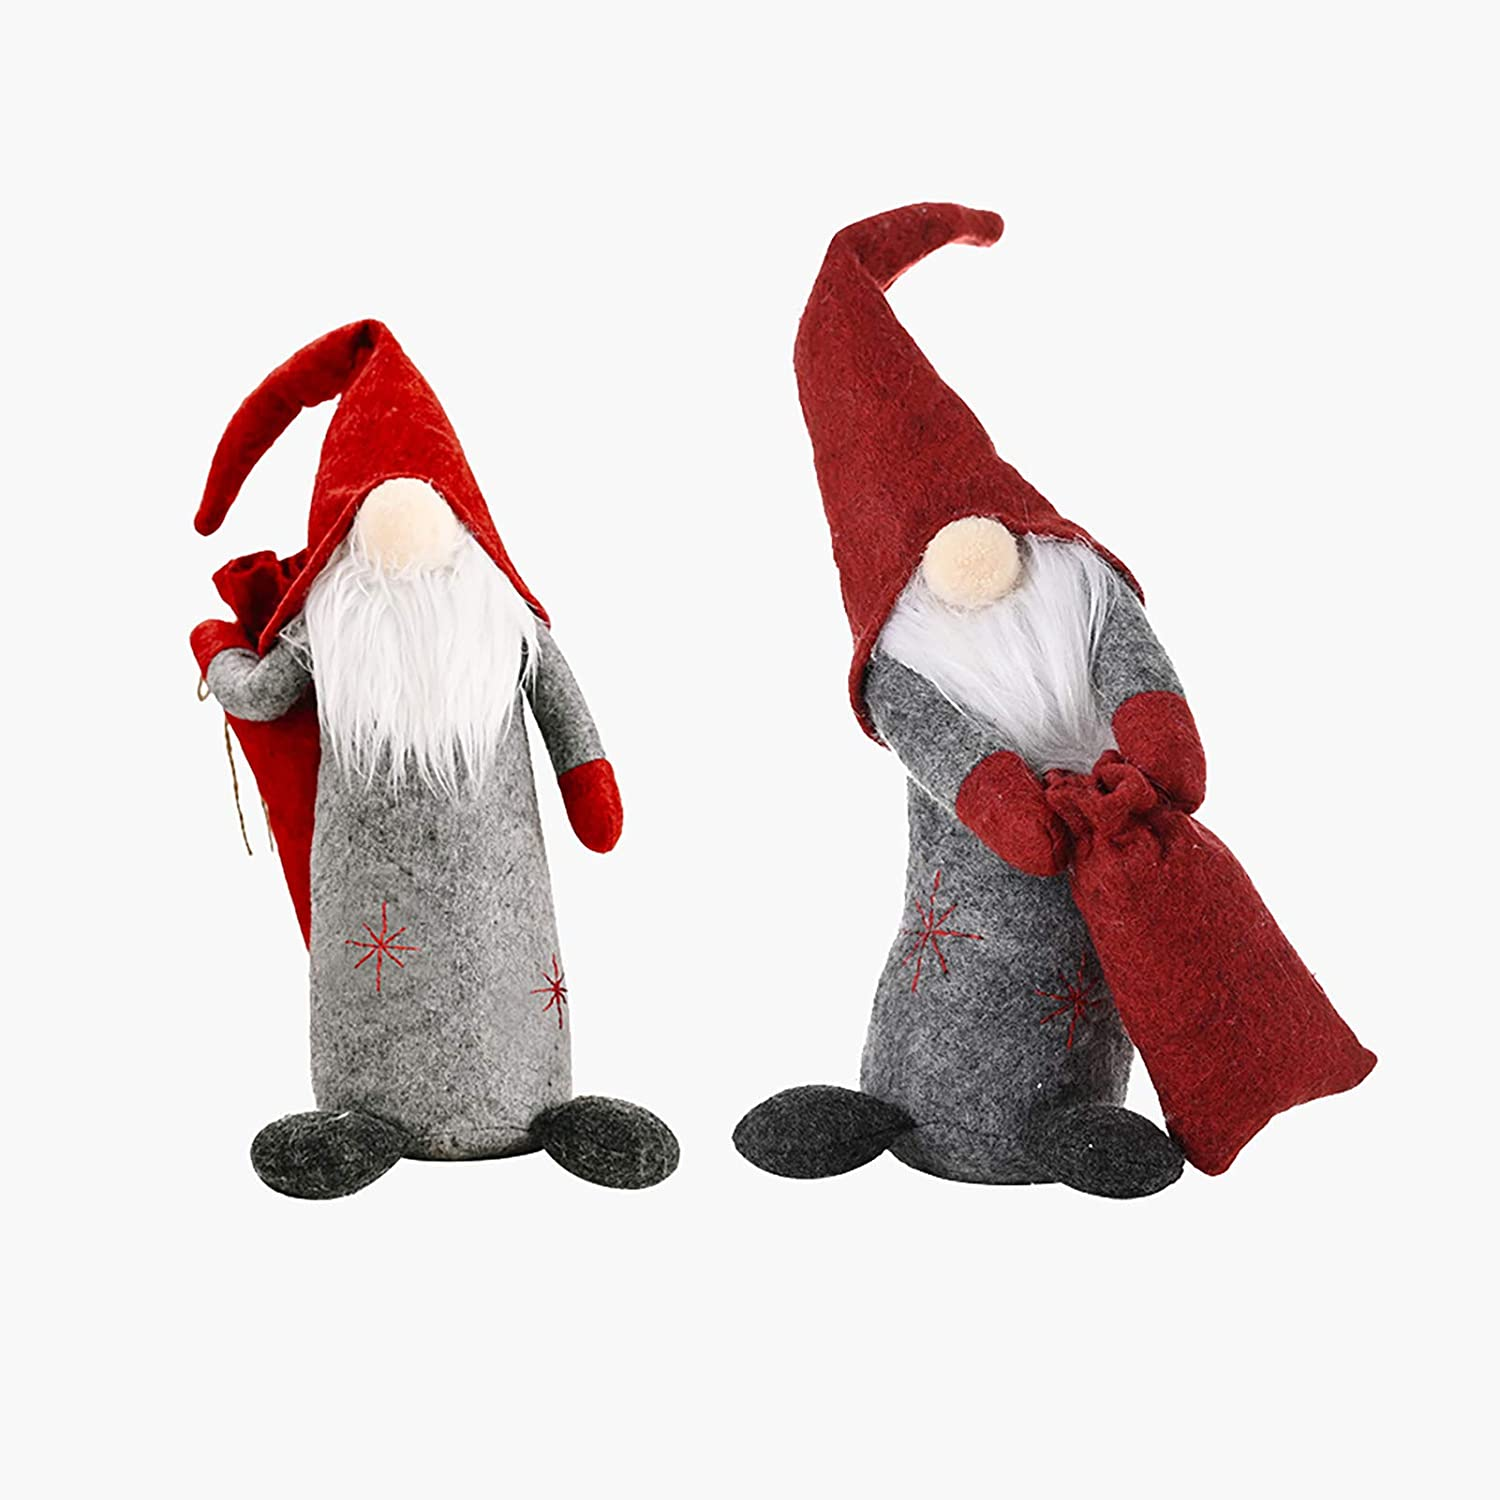 Gnome Christmas Ornaments Set/Bulk - Personalized Christmas Gnome Plush Decoration, Holiday Tomte/Santa's Handmade Doll, Creative Xmas Tabletop Figurines for Home Decor (2 Pack, Red)